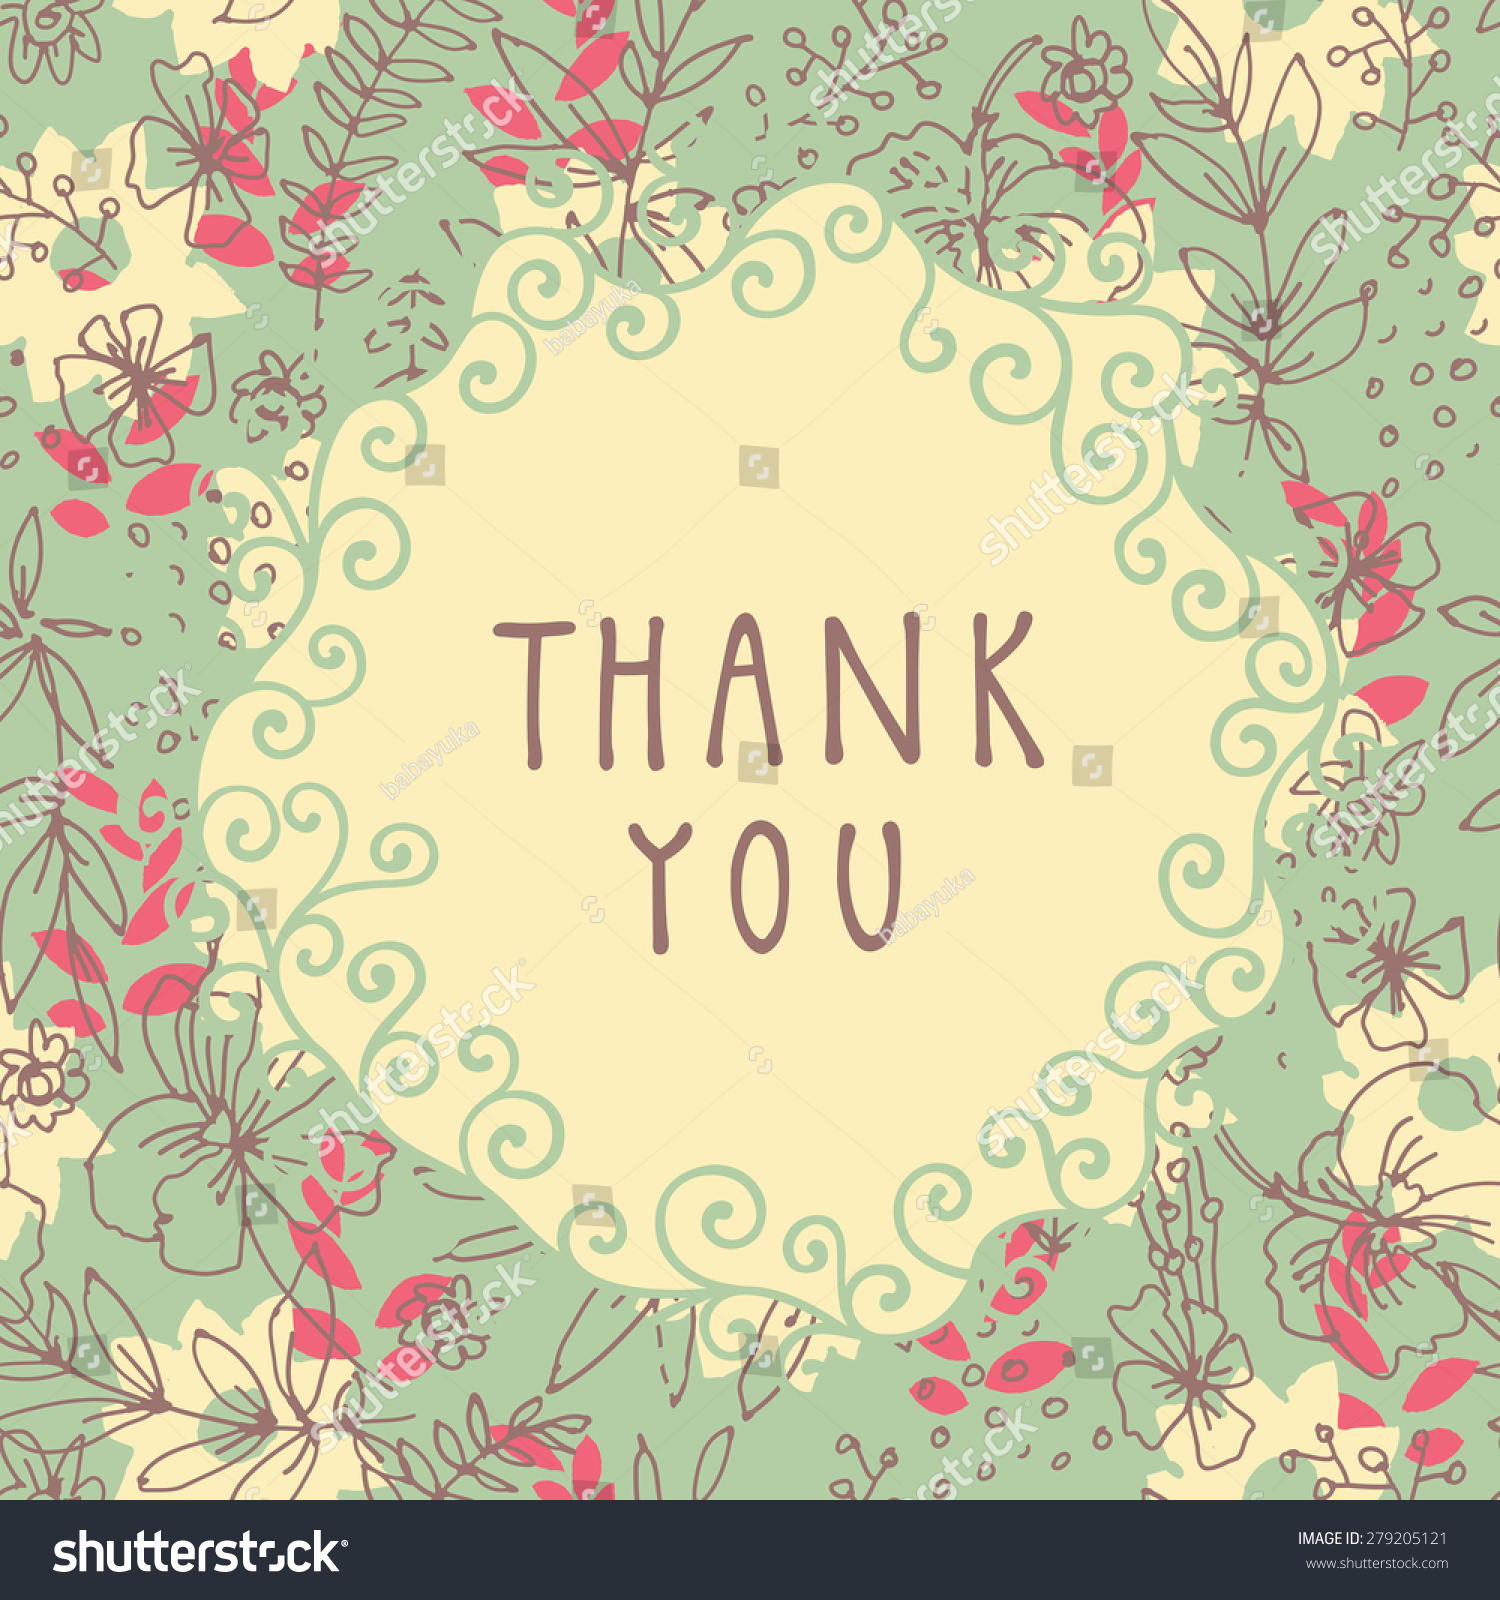 Thank You Shabby Chic Handdrawn Greeting Stock Vector Royalty Free